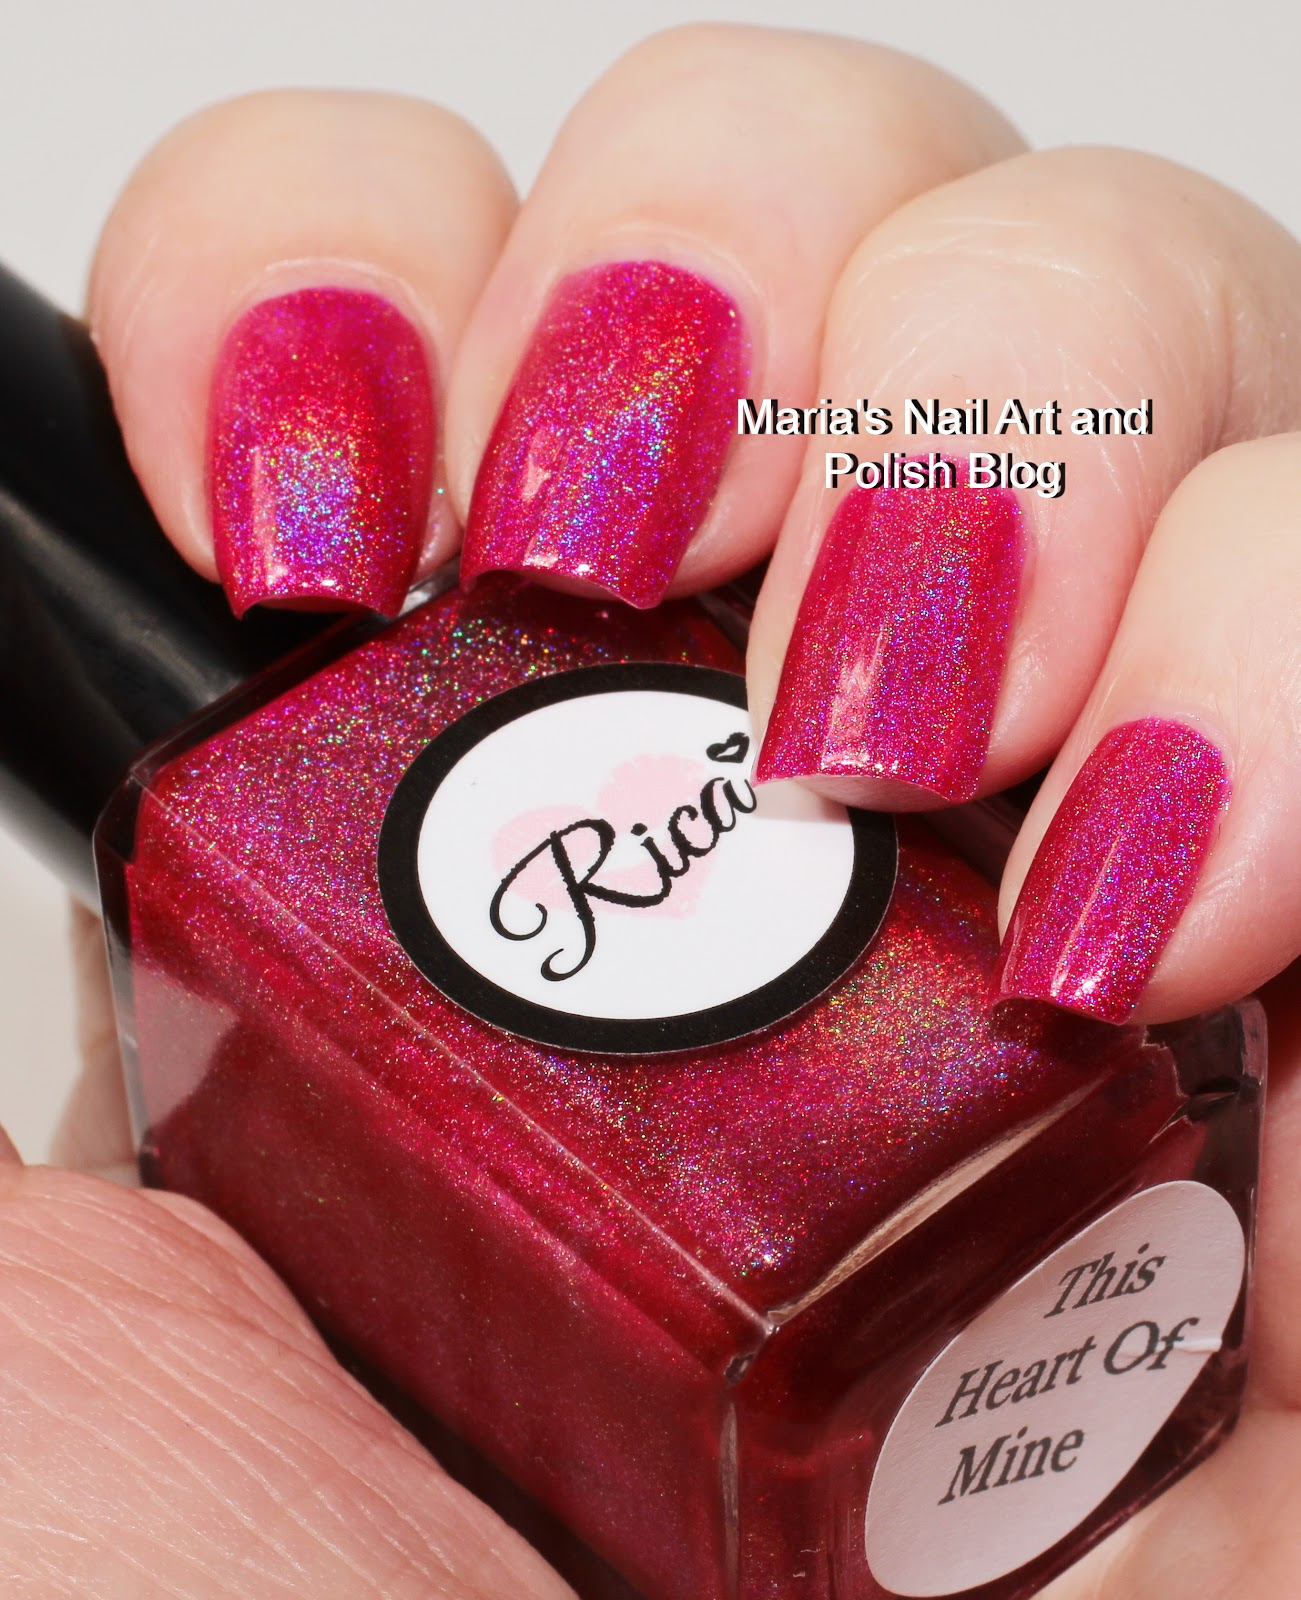 Marias Nail Art And Polish Blog: Rica This Heart Of Mine